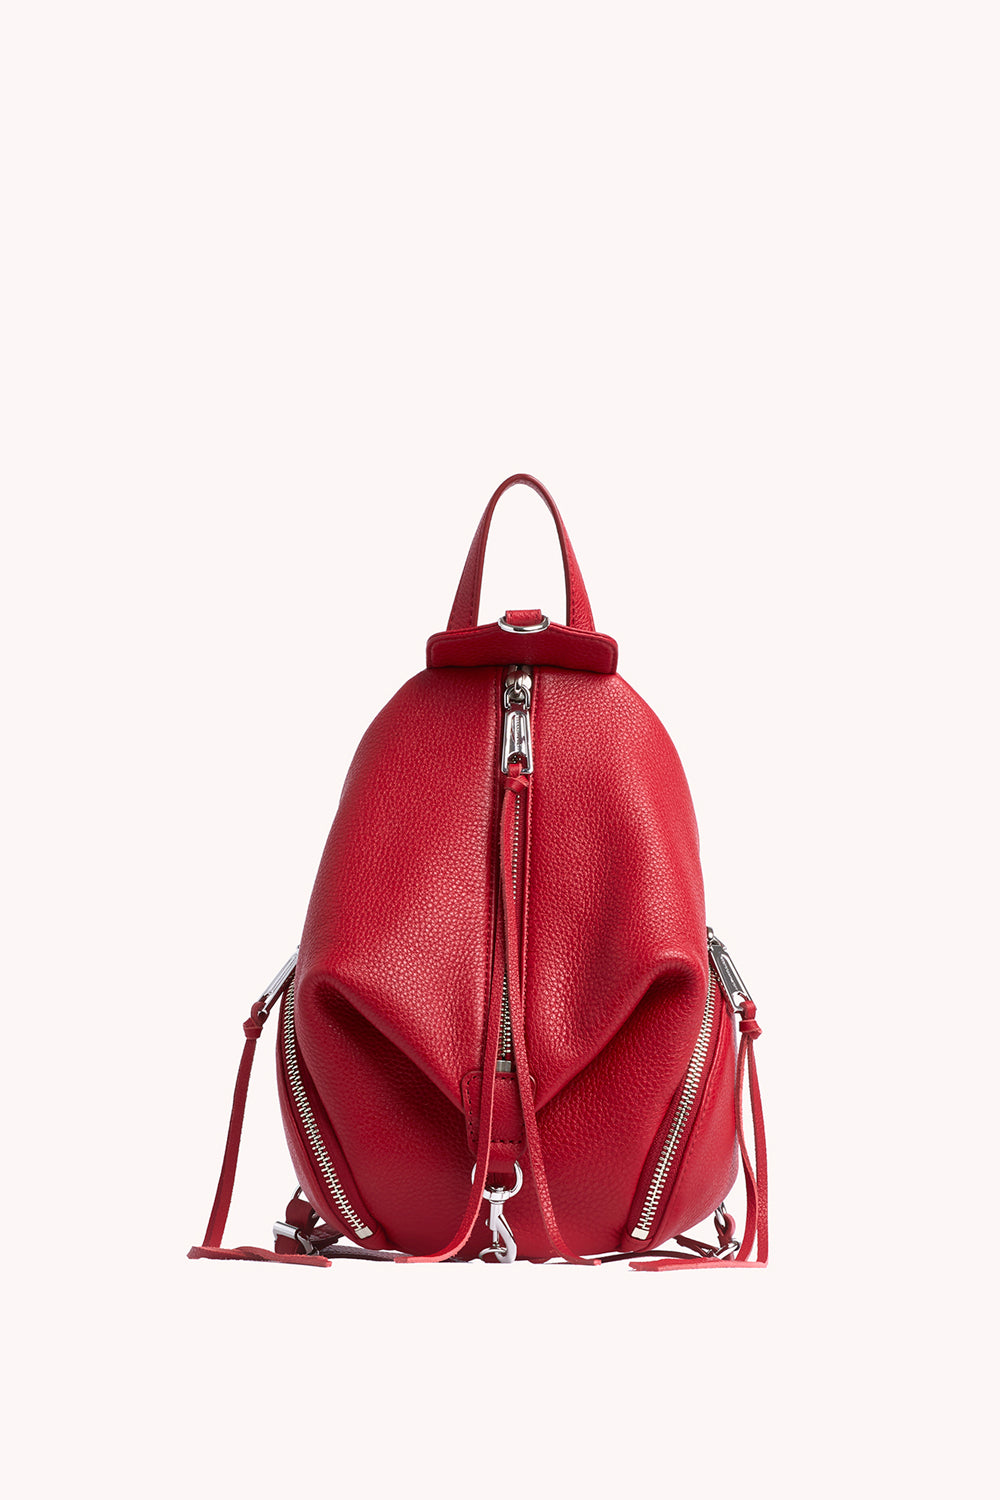 Rebecca-Minkoff Convertible Mini Julian Backpack